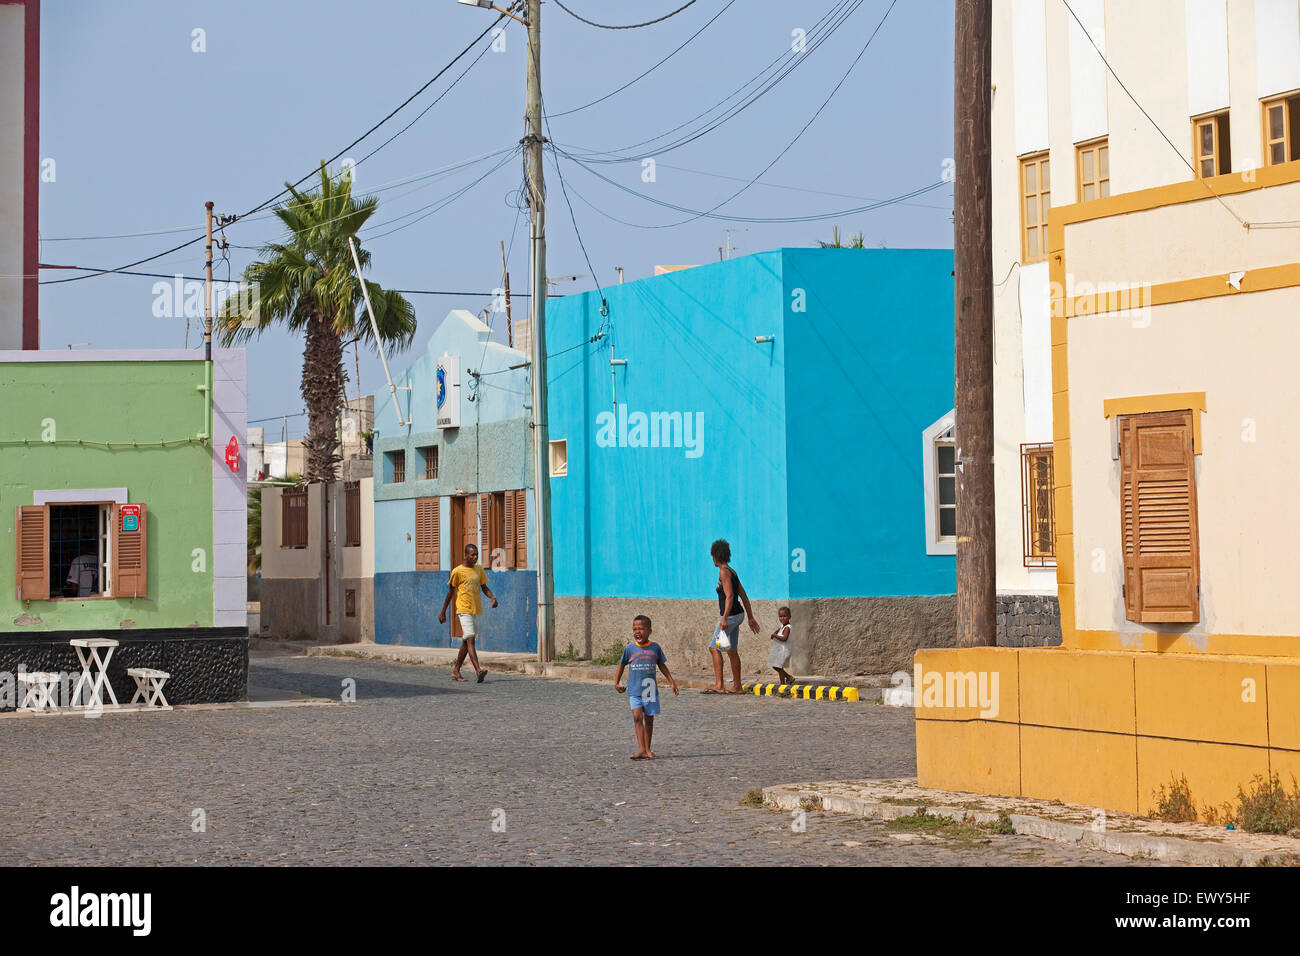 Street with colourful houses at the fishing village Palmeira on the island of Sal, Cape Verde / Cabo Verde, Western - Stock Image